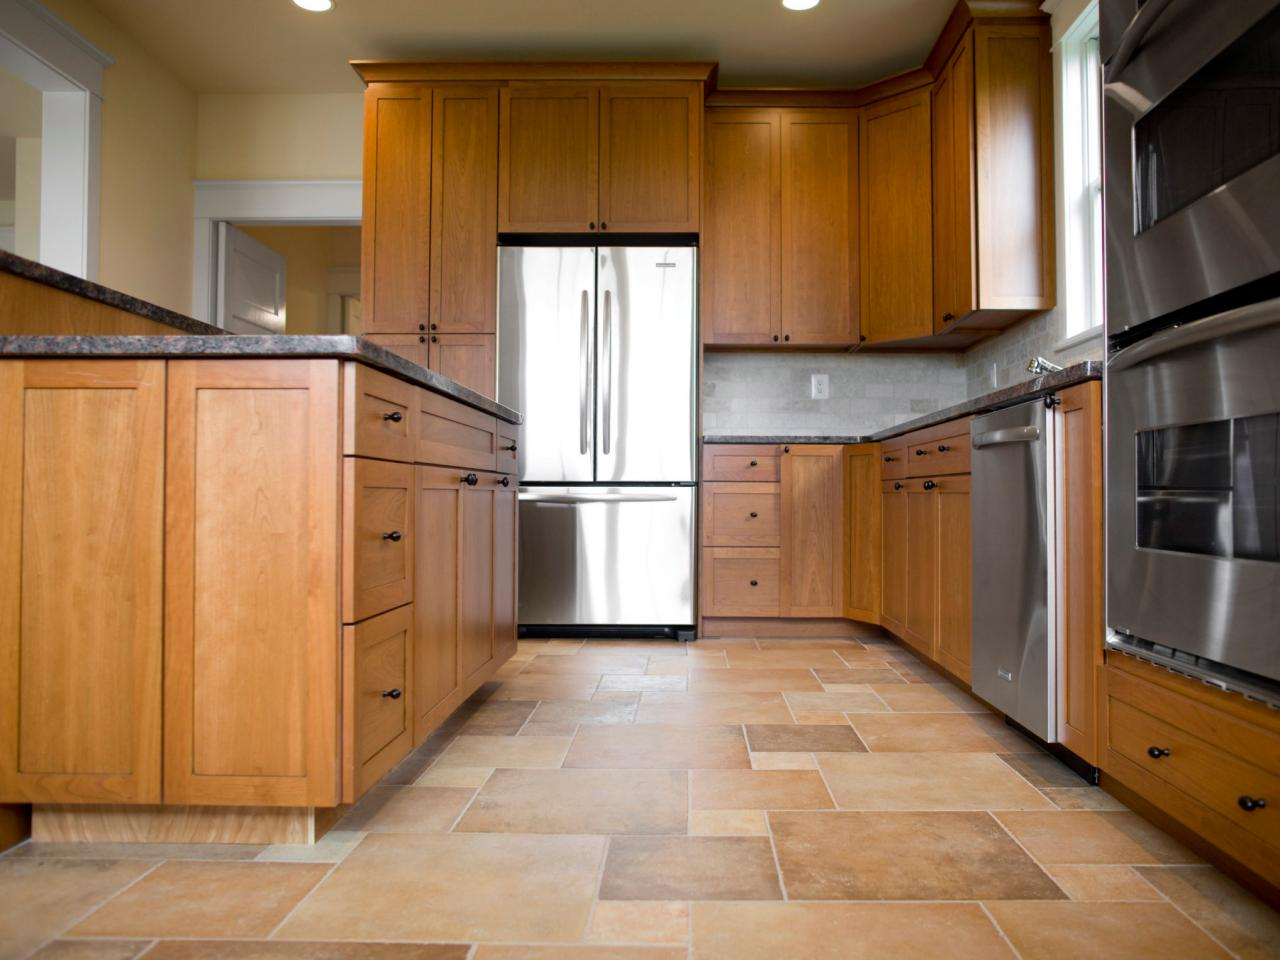 kitchen tile. what\u0027s the best kitchen floor tile? tile o